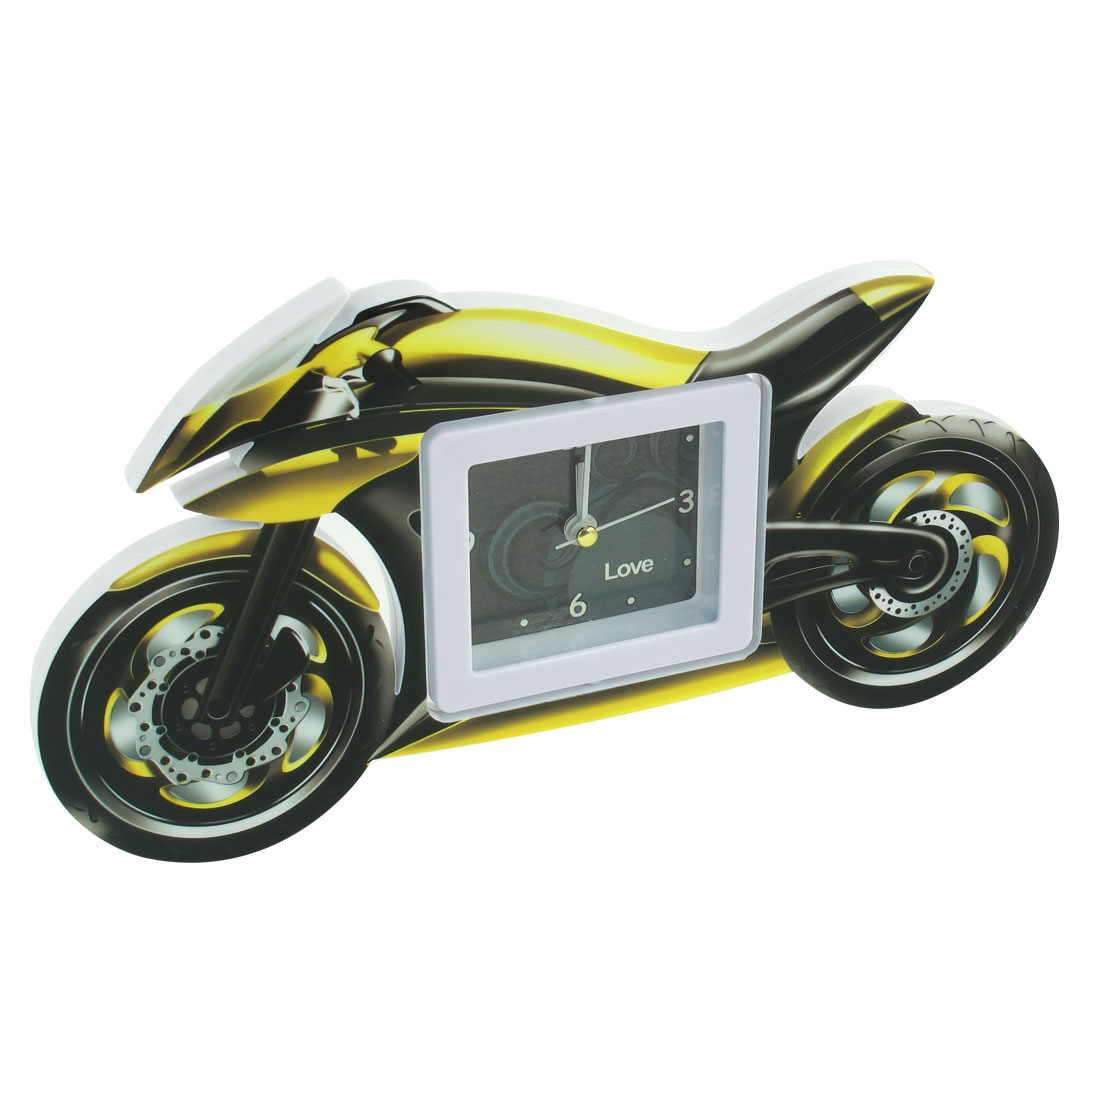 Home Motorcycle Design Black White Yellow Plastic Desktop Quartz Clock